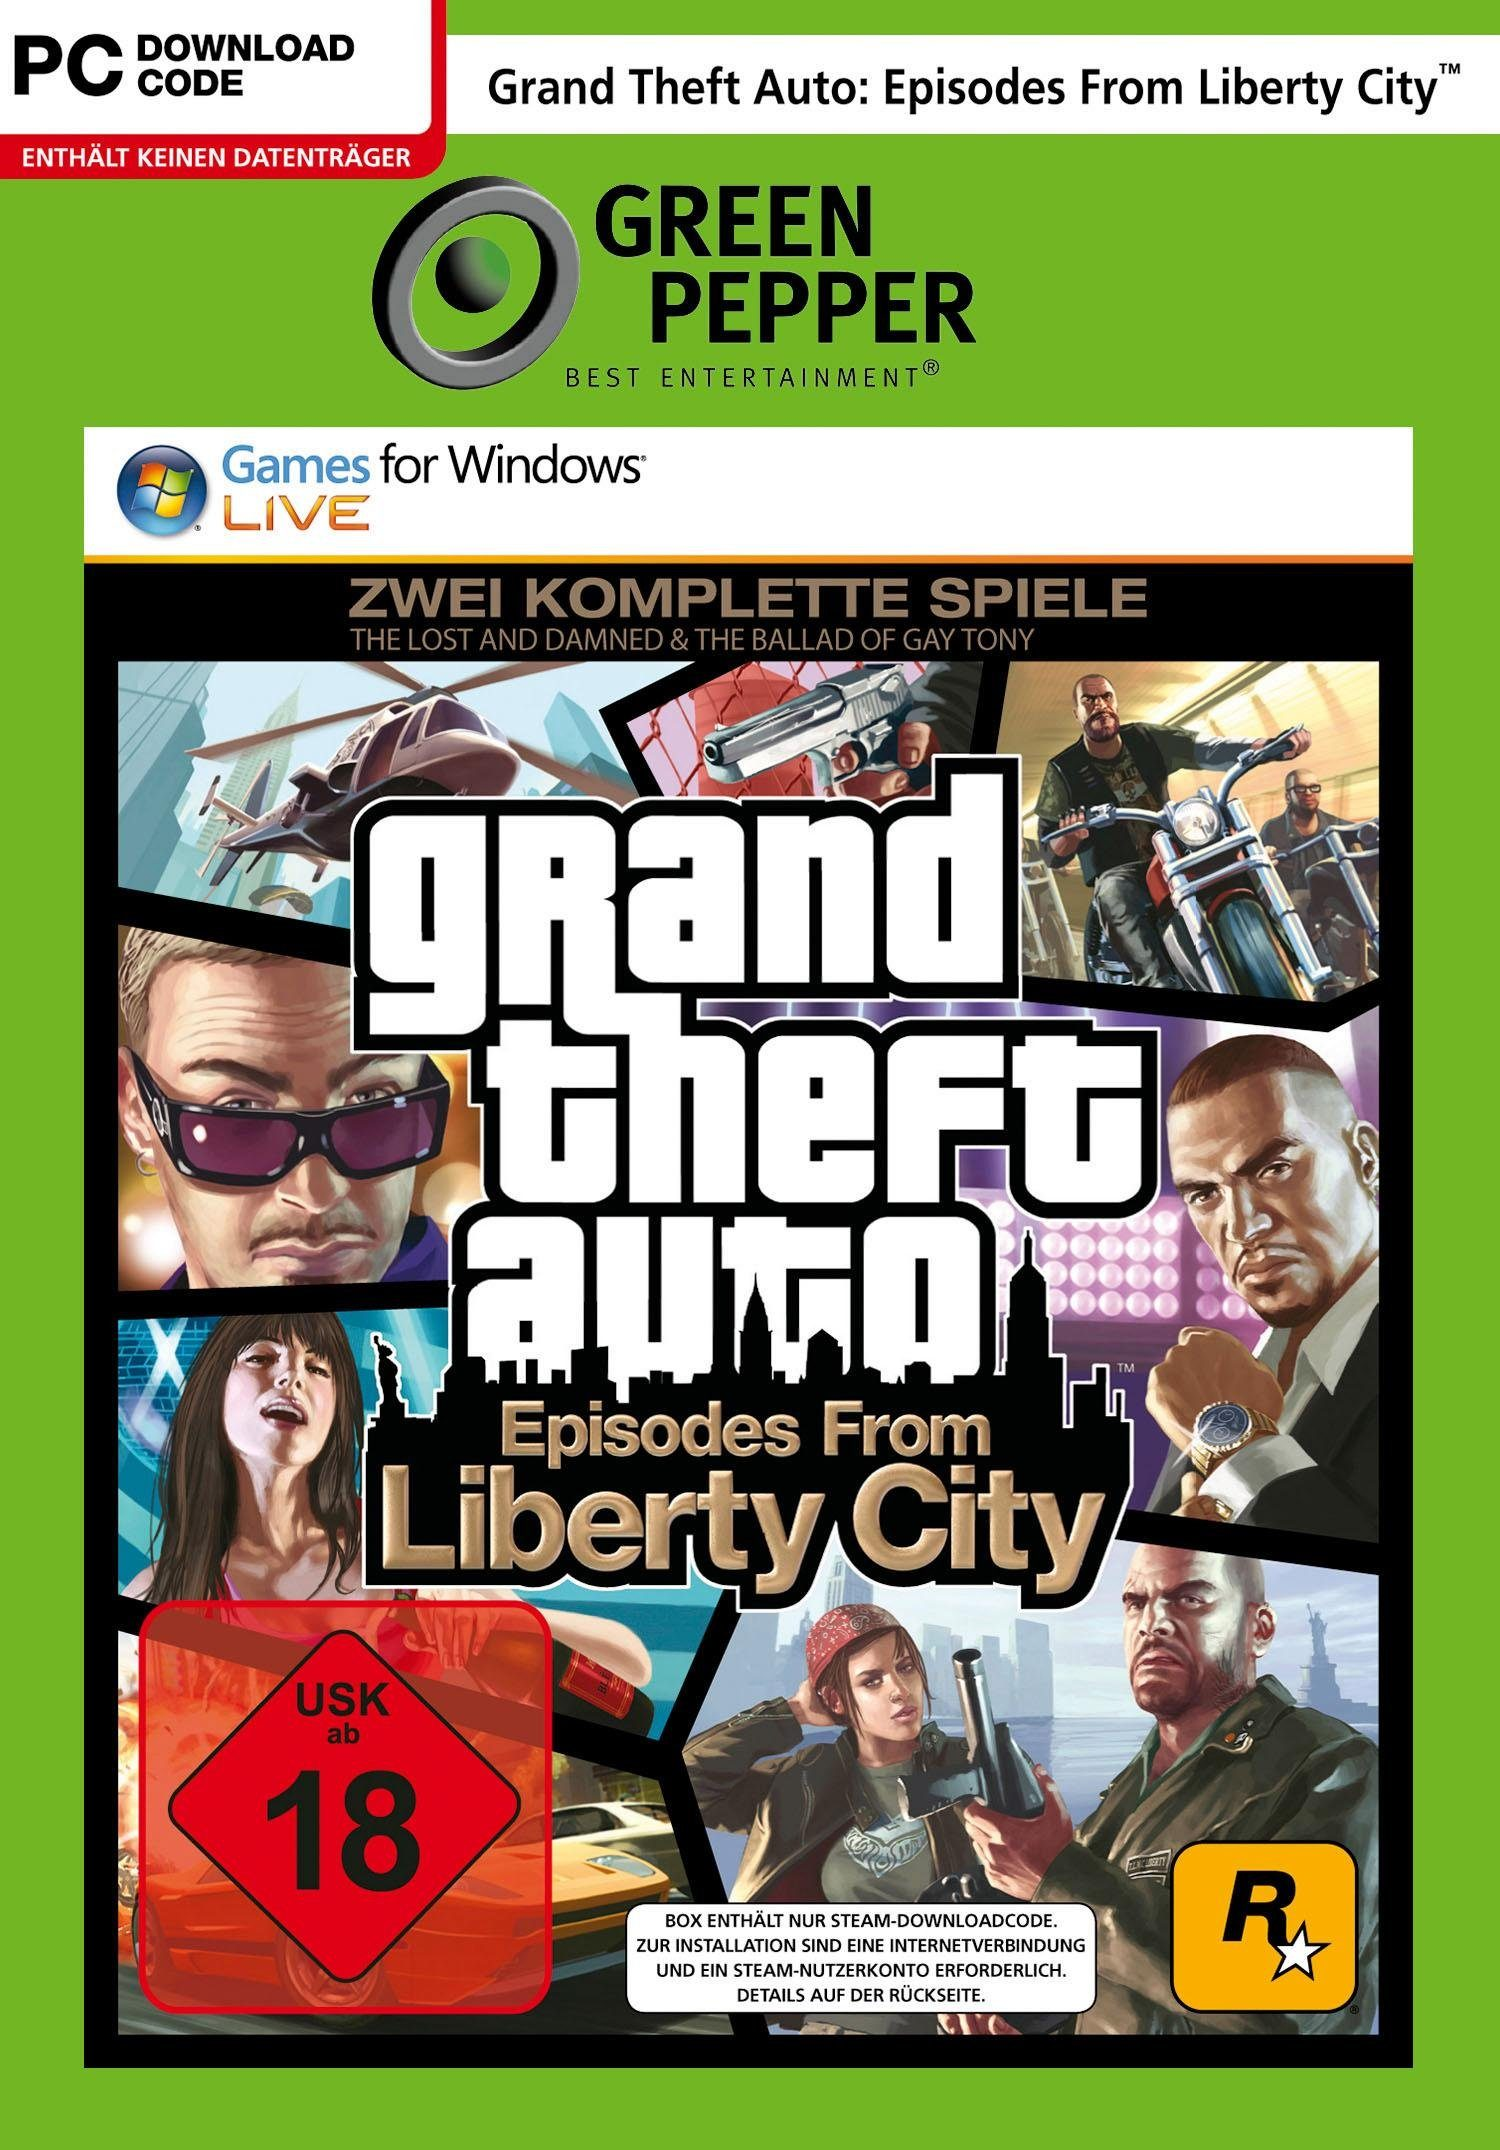 GTA: Episodes from Liberty City PC, Software Pyramide